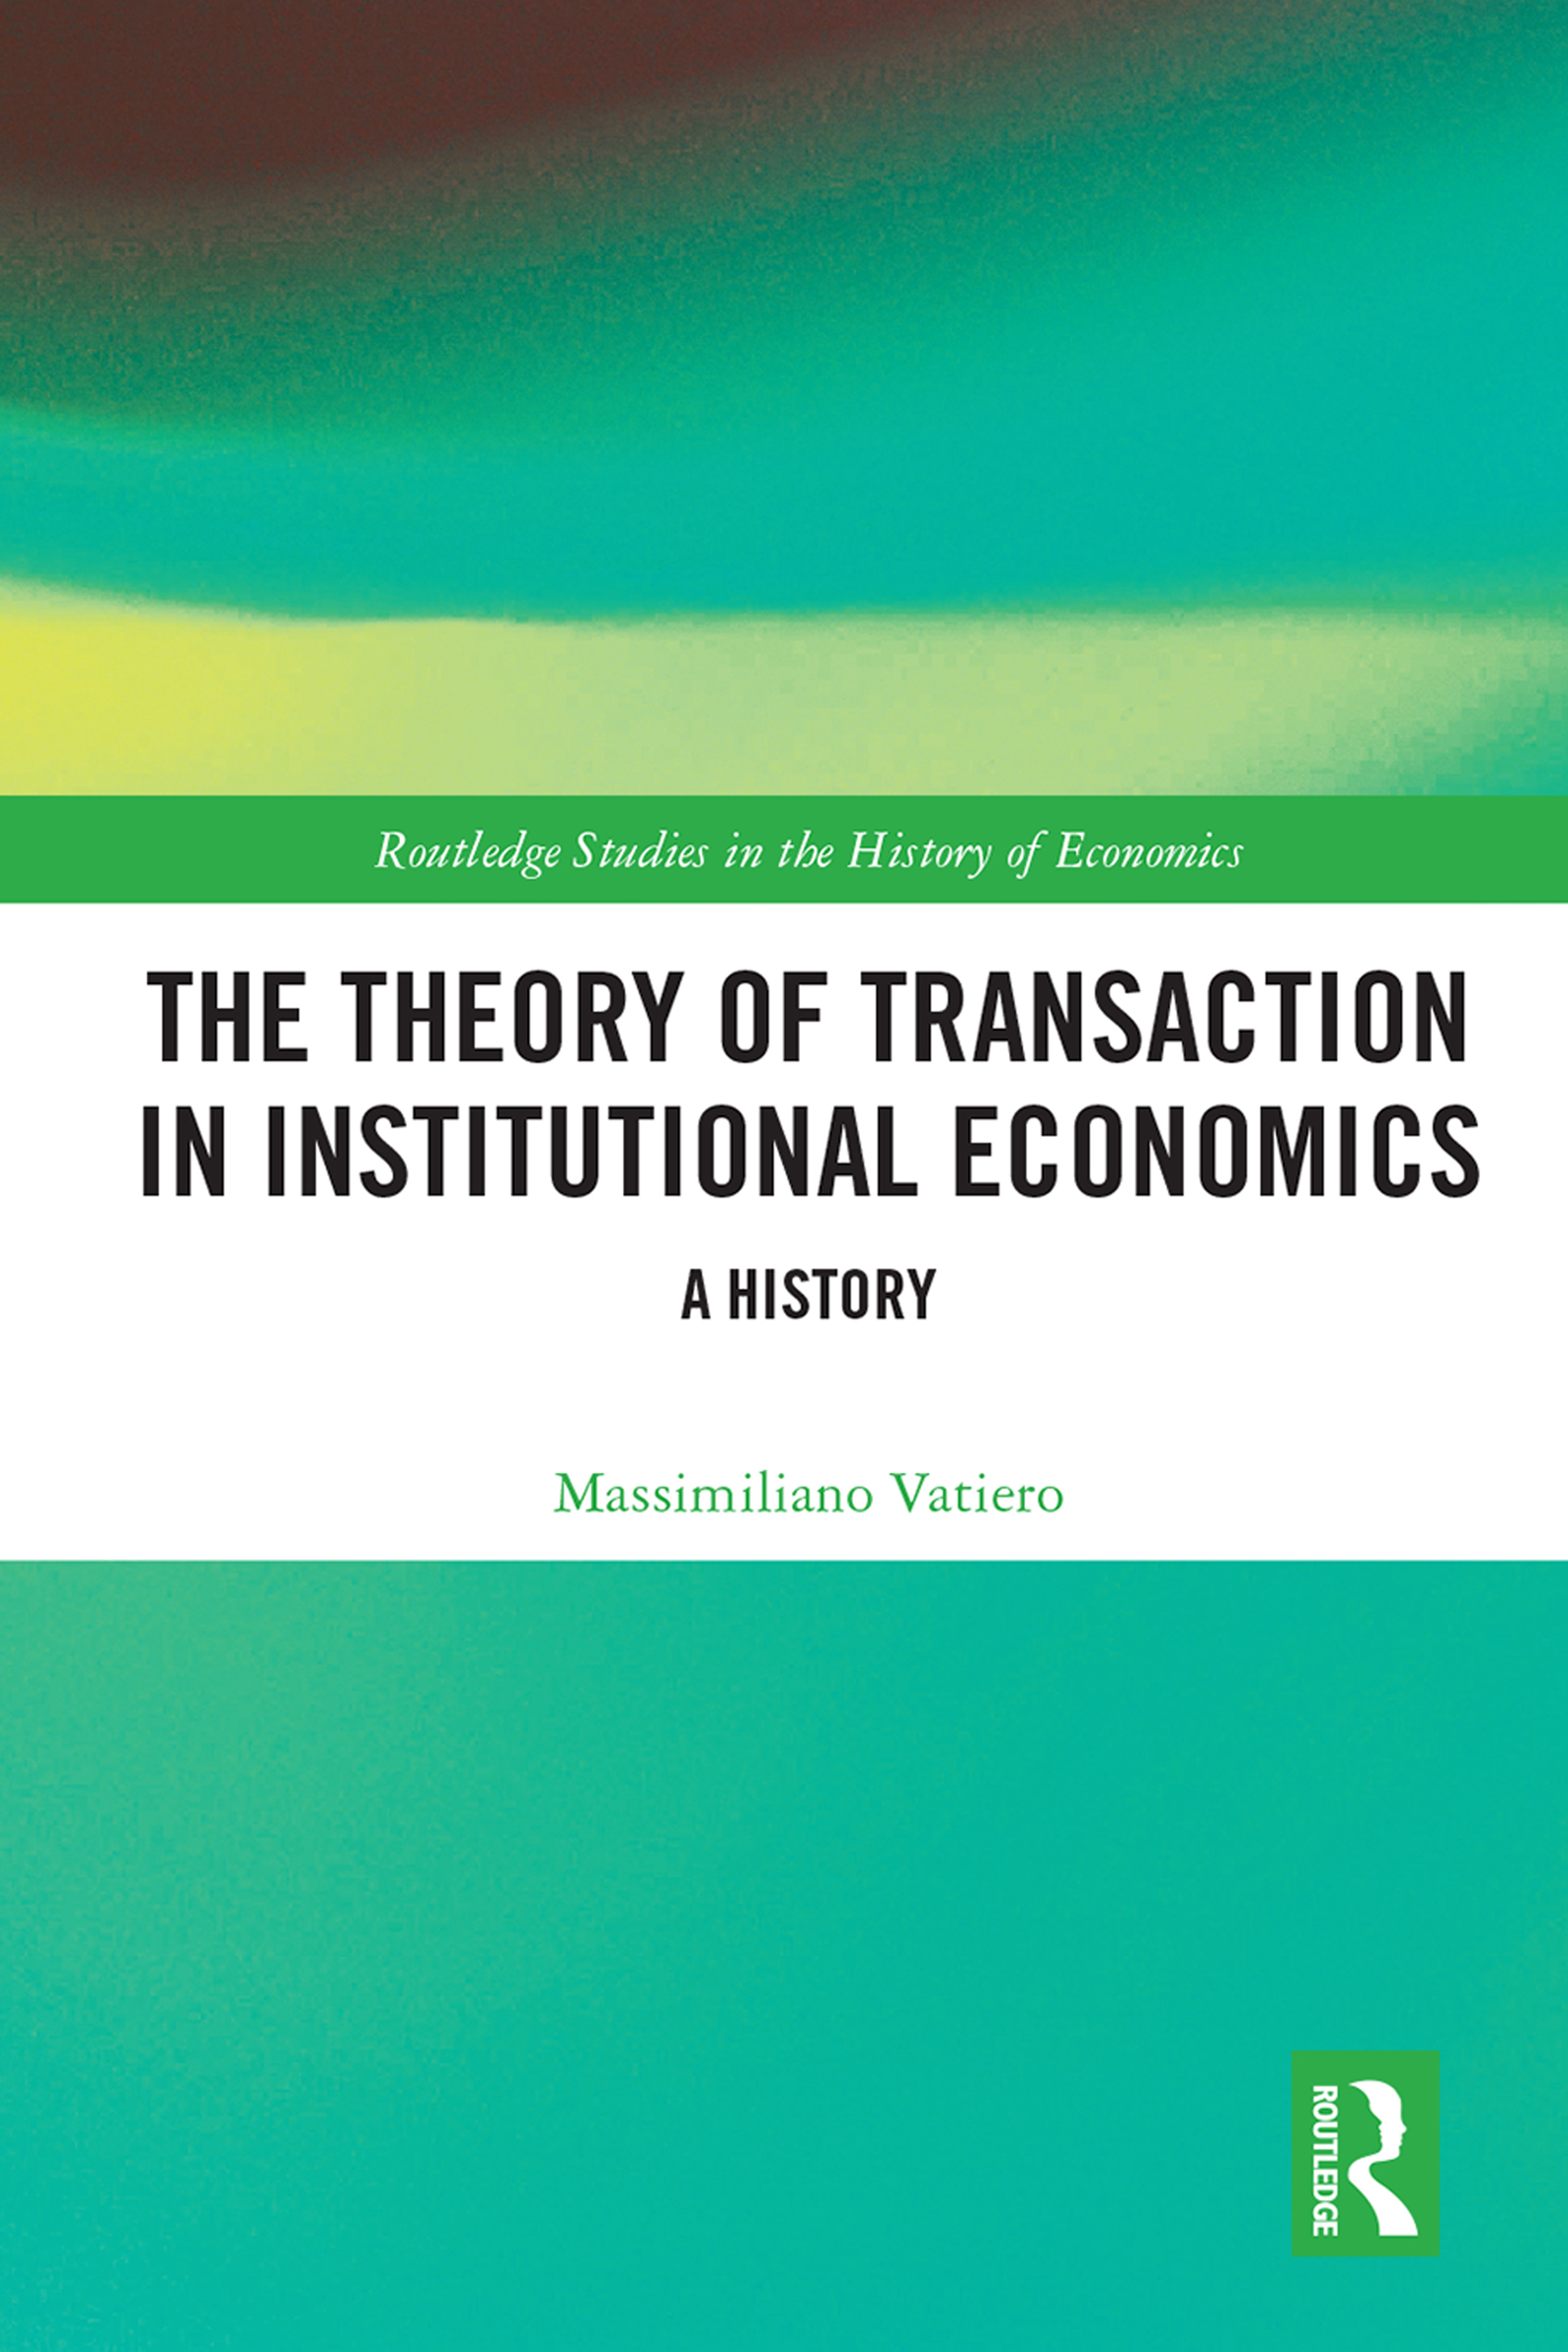 The Theory of Transaction in Institutional Economics